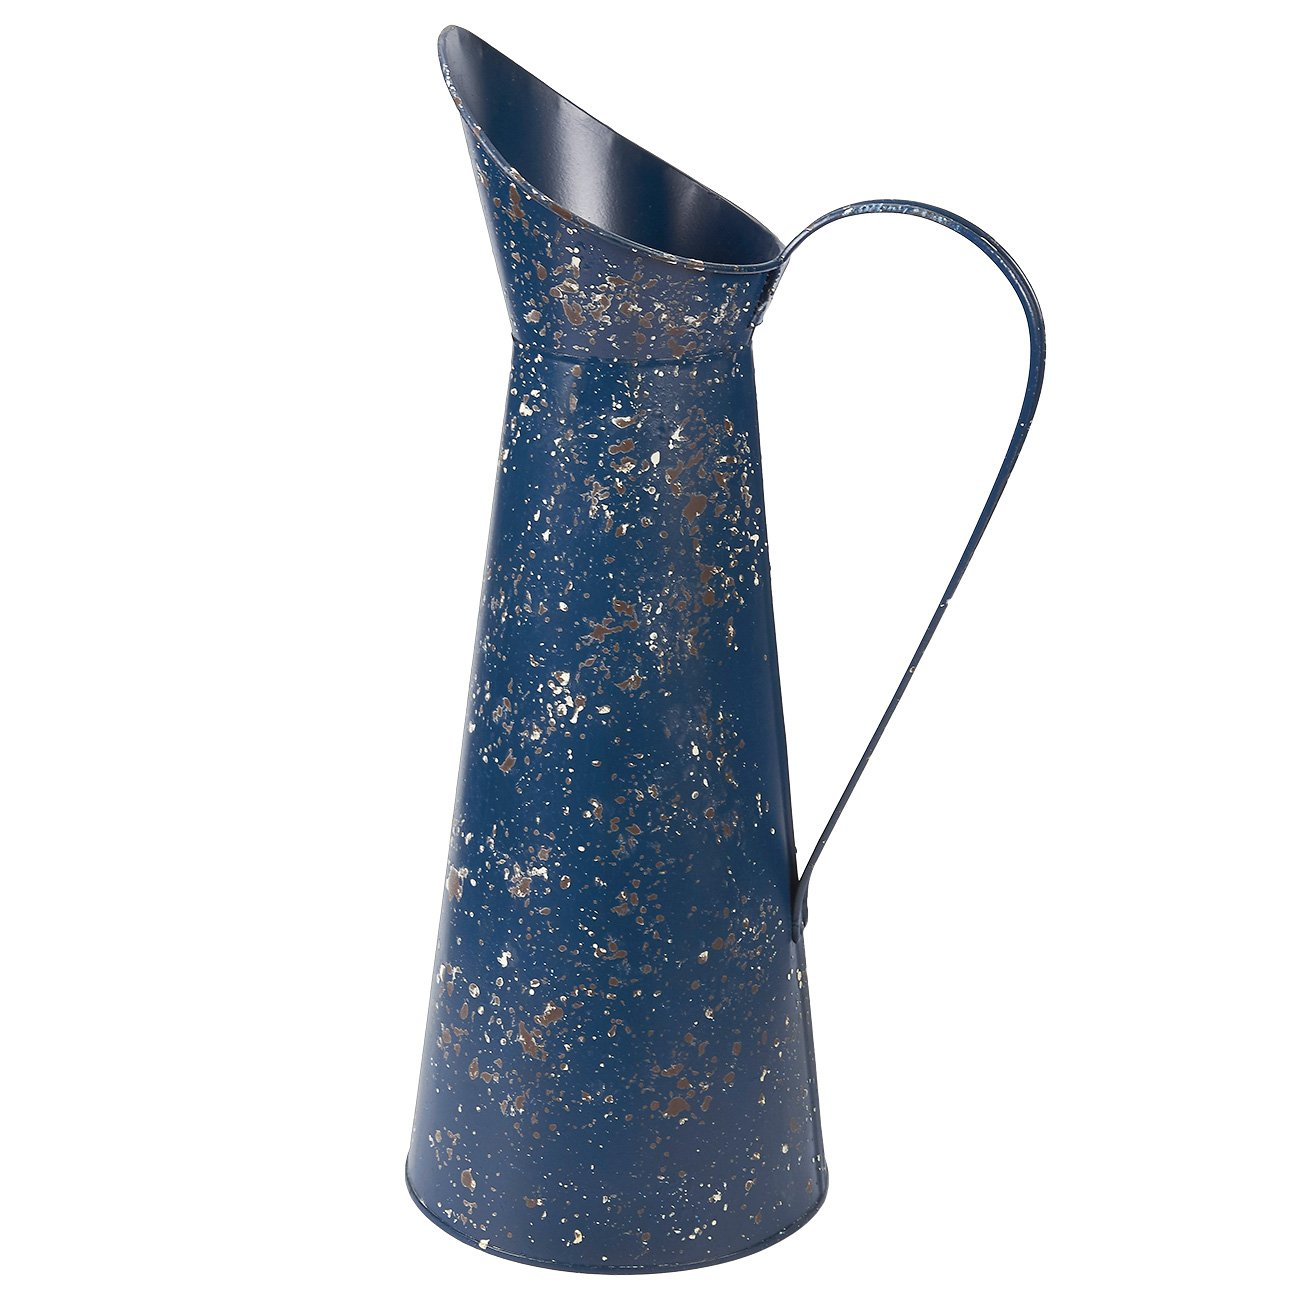 Decorative Rustic Watering Can - Galvanized Navy Blue Finshed Jug Vase Pitcher with Handle for Home Office Garden Decor, 8 x 15.8 x 6 Inches